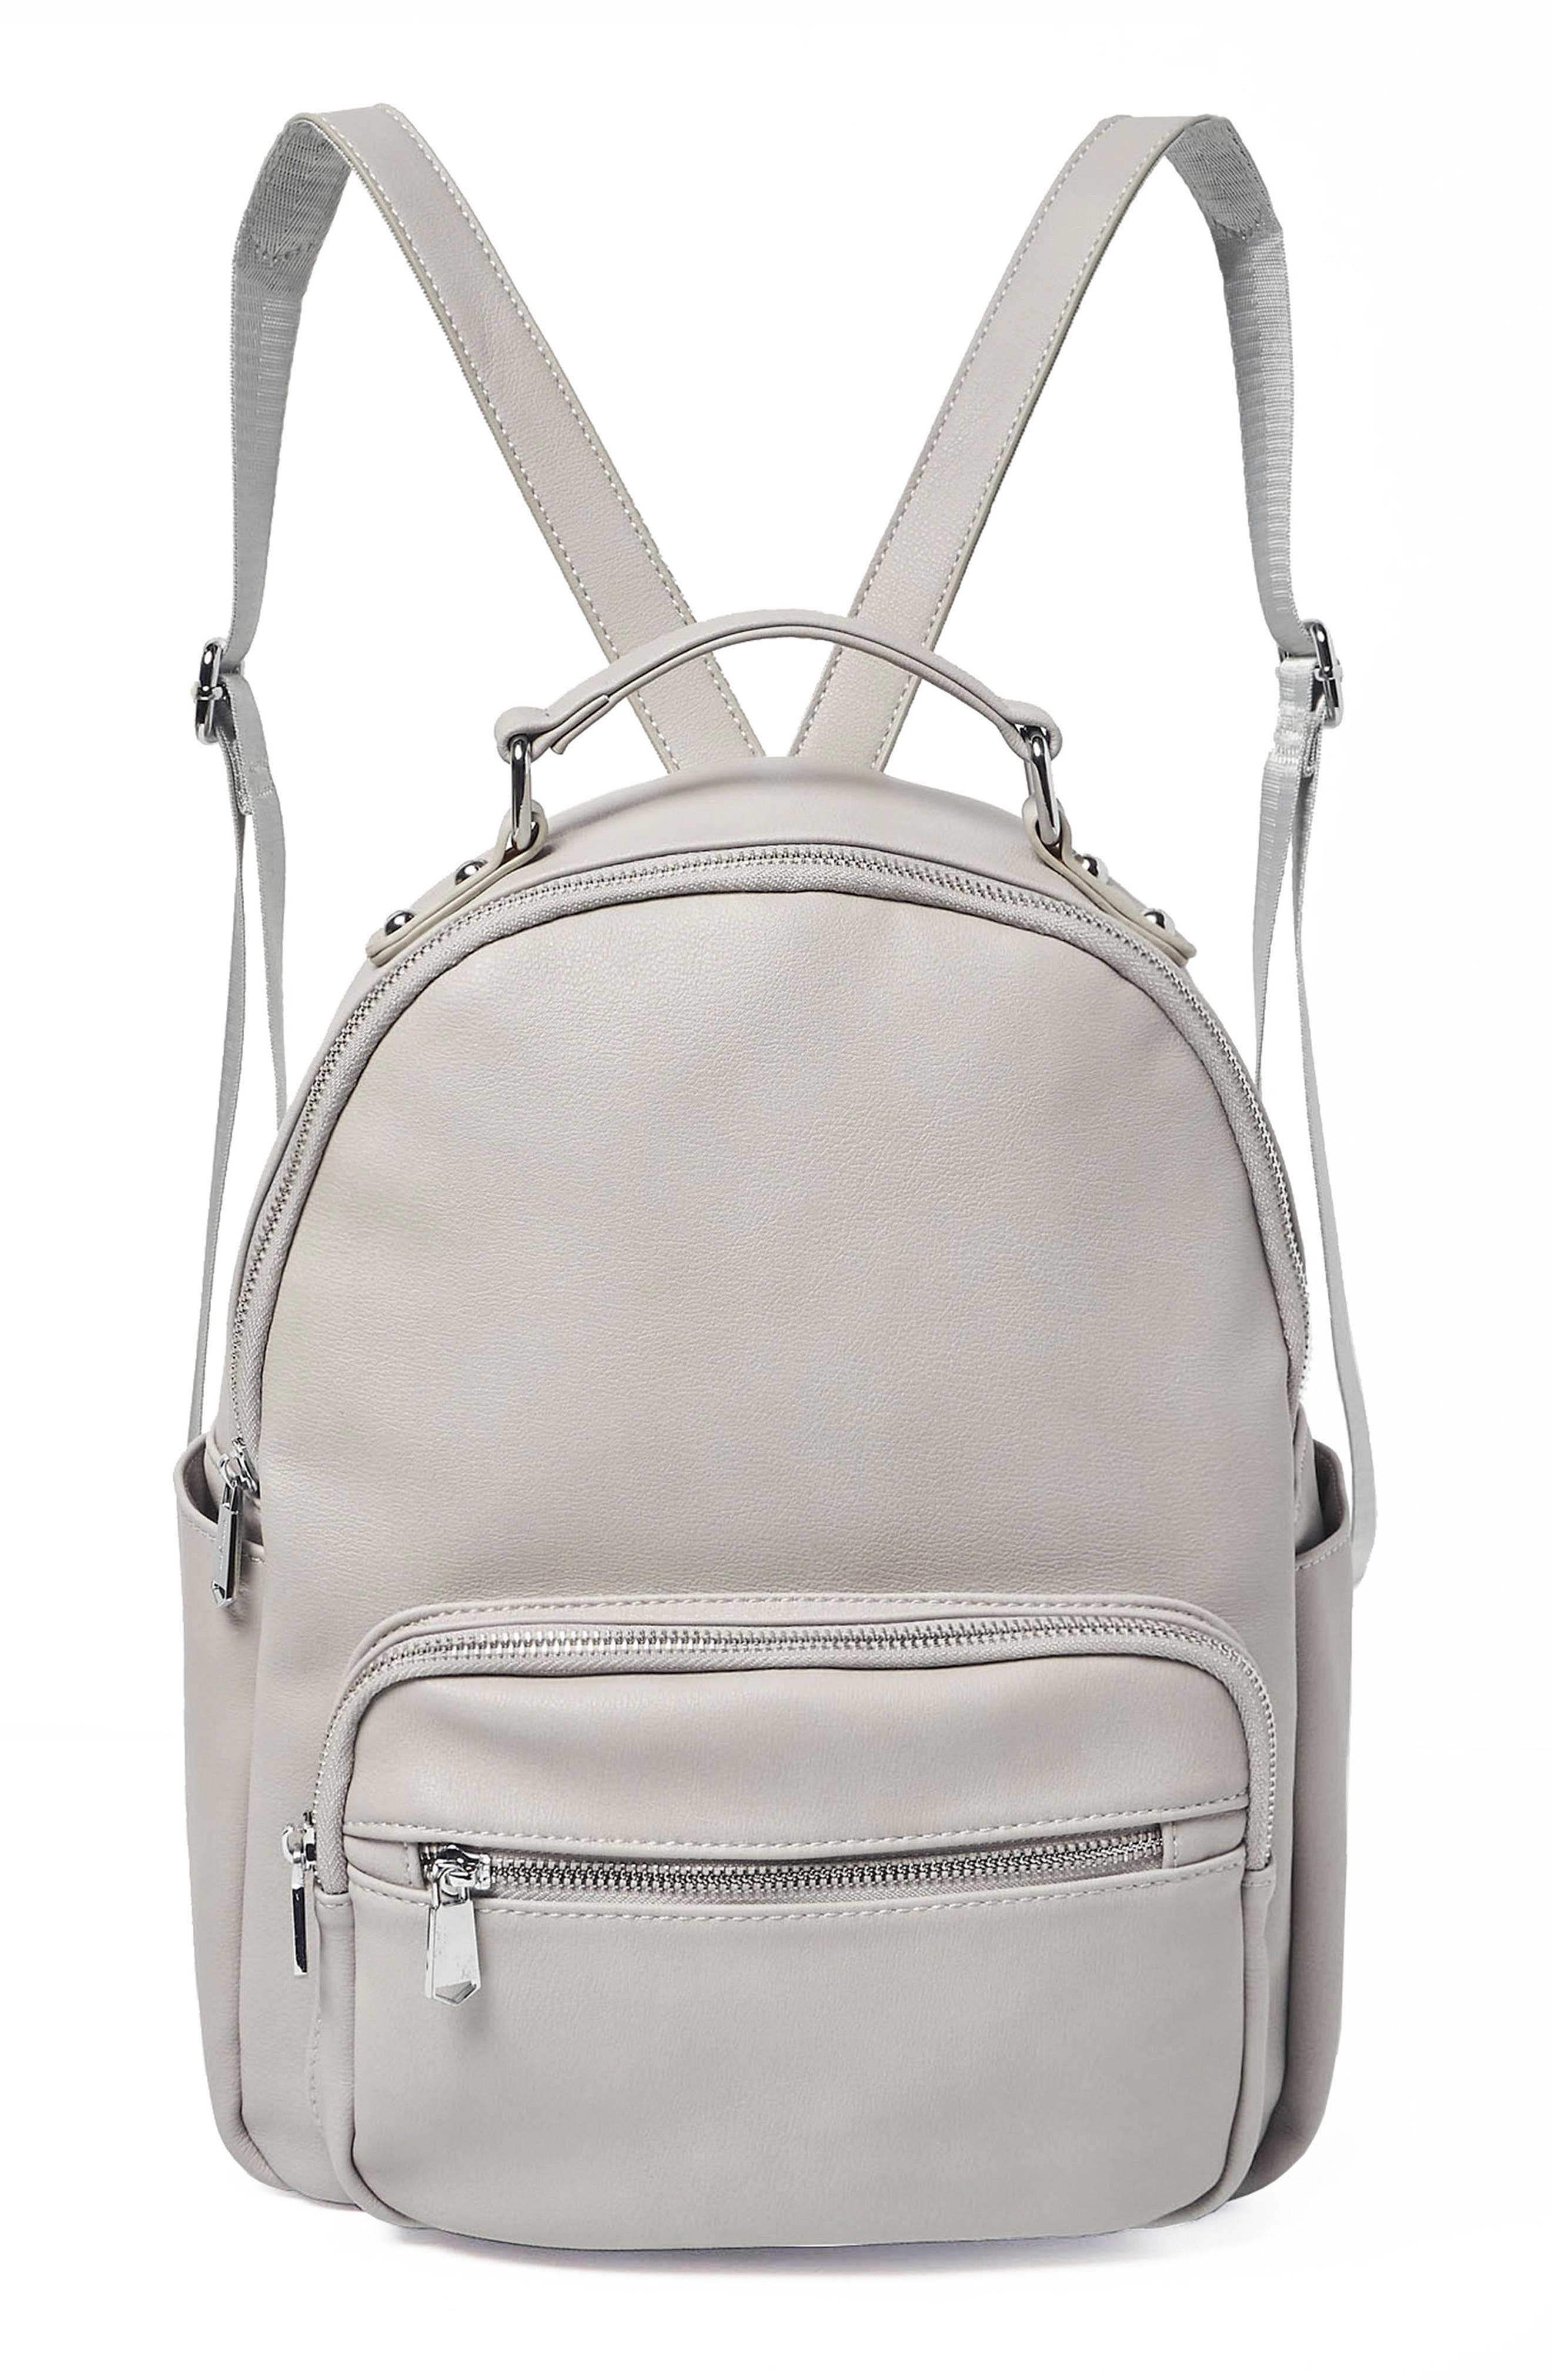 ON MY OWN VEGAN LEATHER BACKPACK - GREY